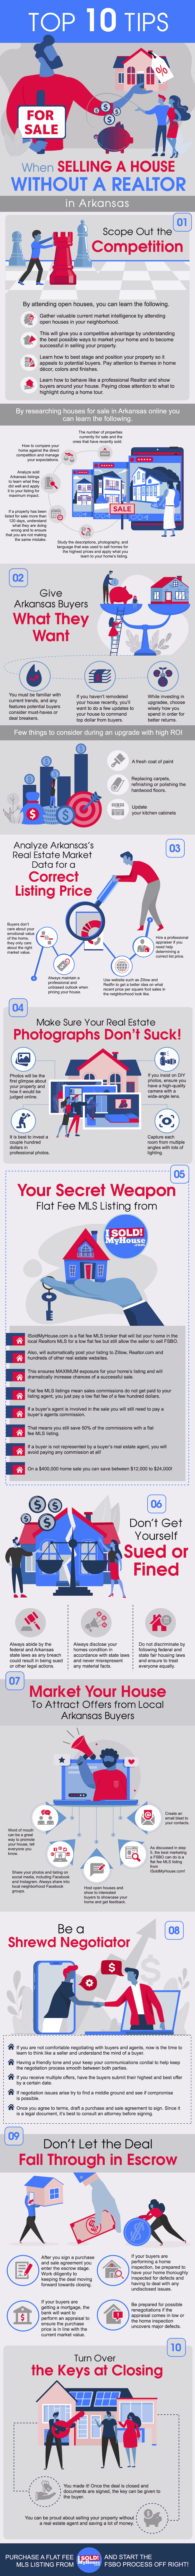 infographic of the 10 steps to sell a house in arkansas without an agent